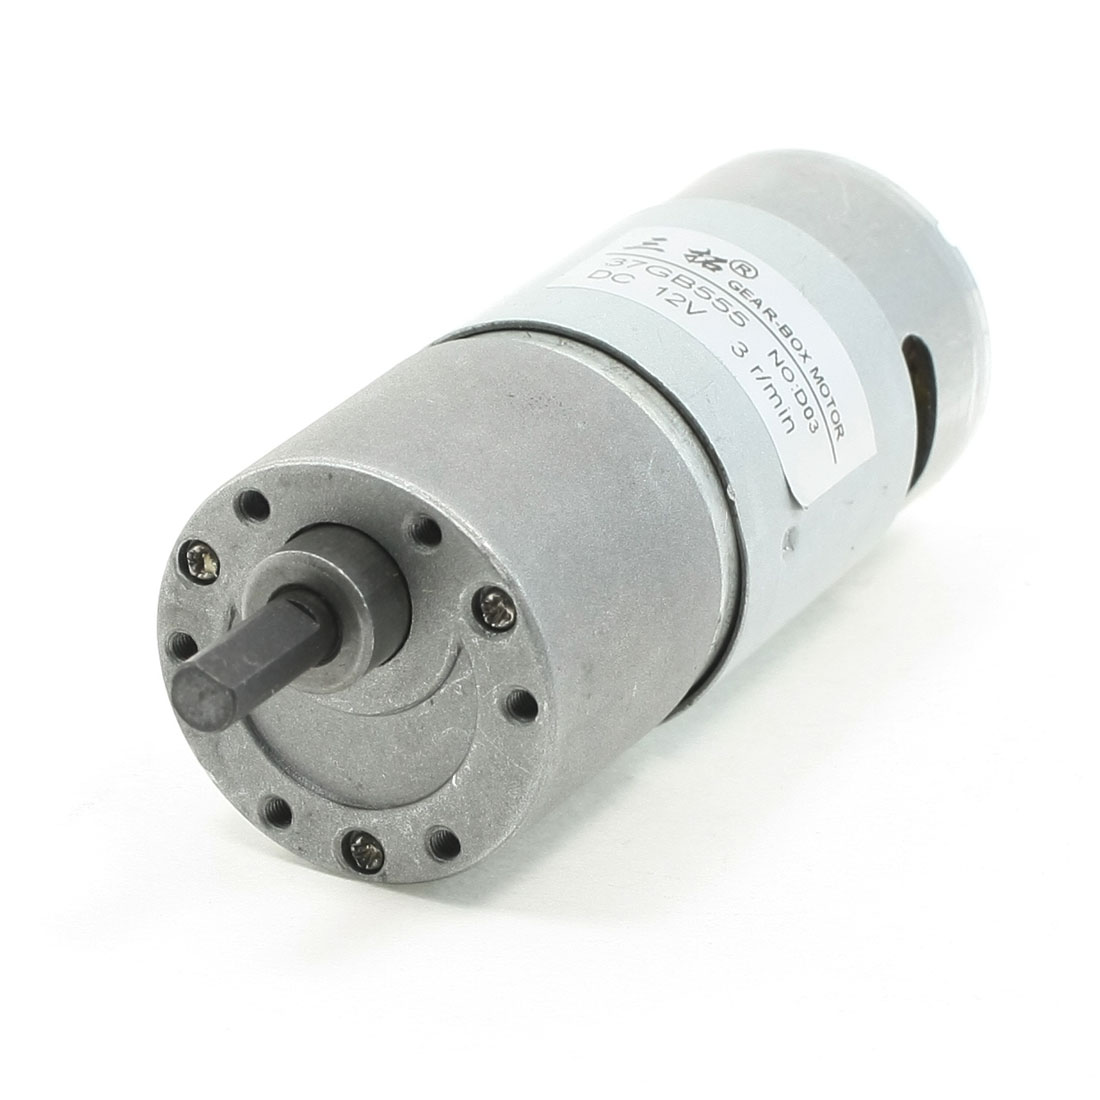 3RPM DC 12V 3A 36mm Diameter Gear Box Speed Reducer Motor